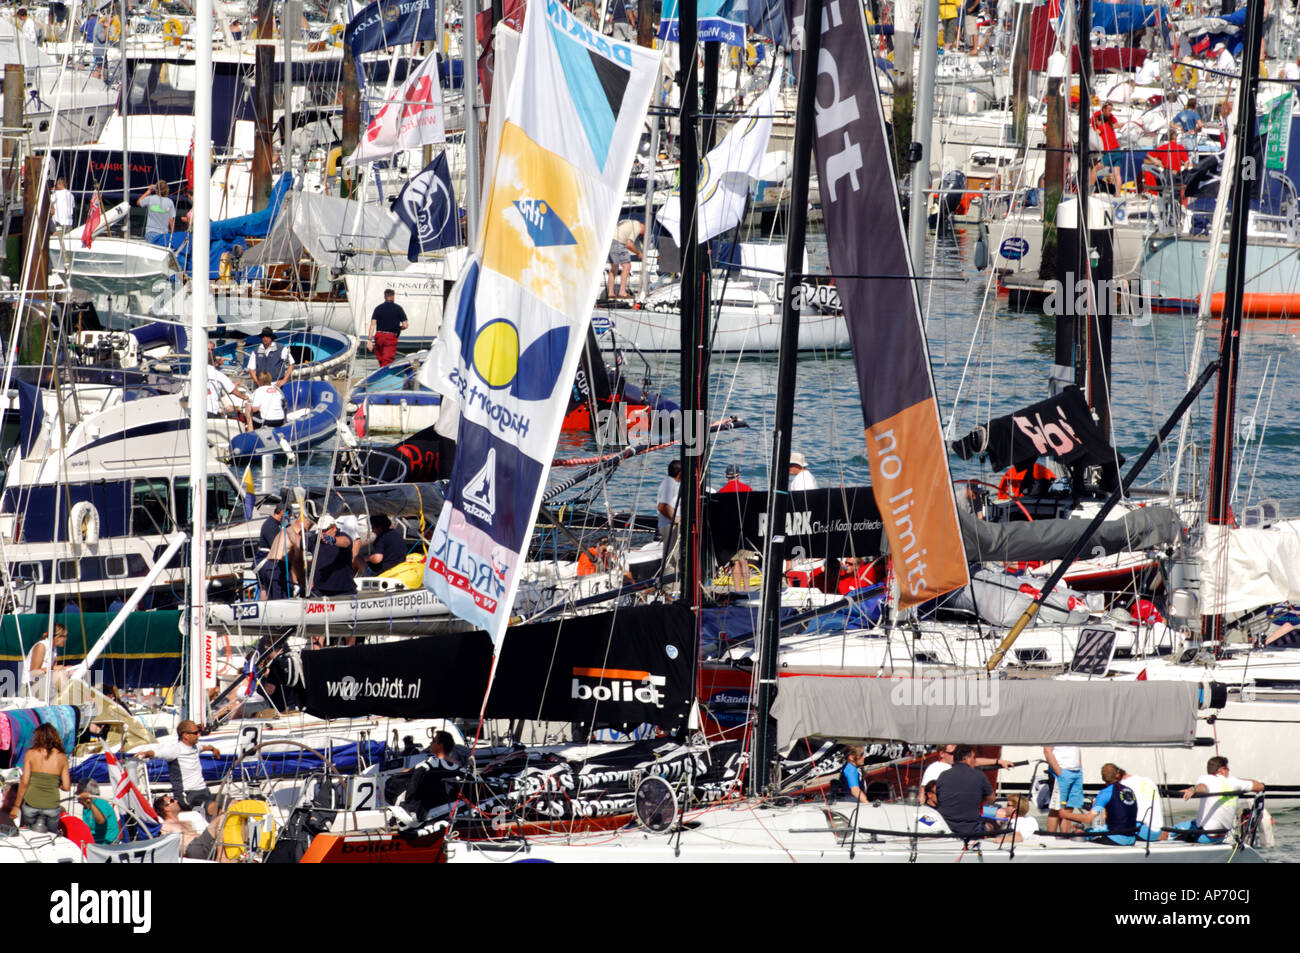 the packed yacht haven harbour port at cowes marinas during cowes week different unusual views showing atmosphere - Stock Image